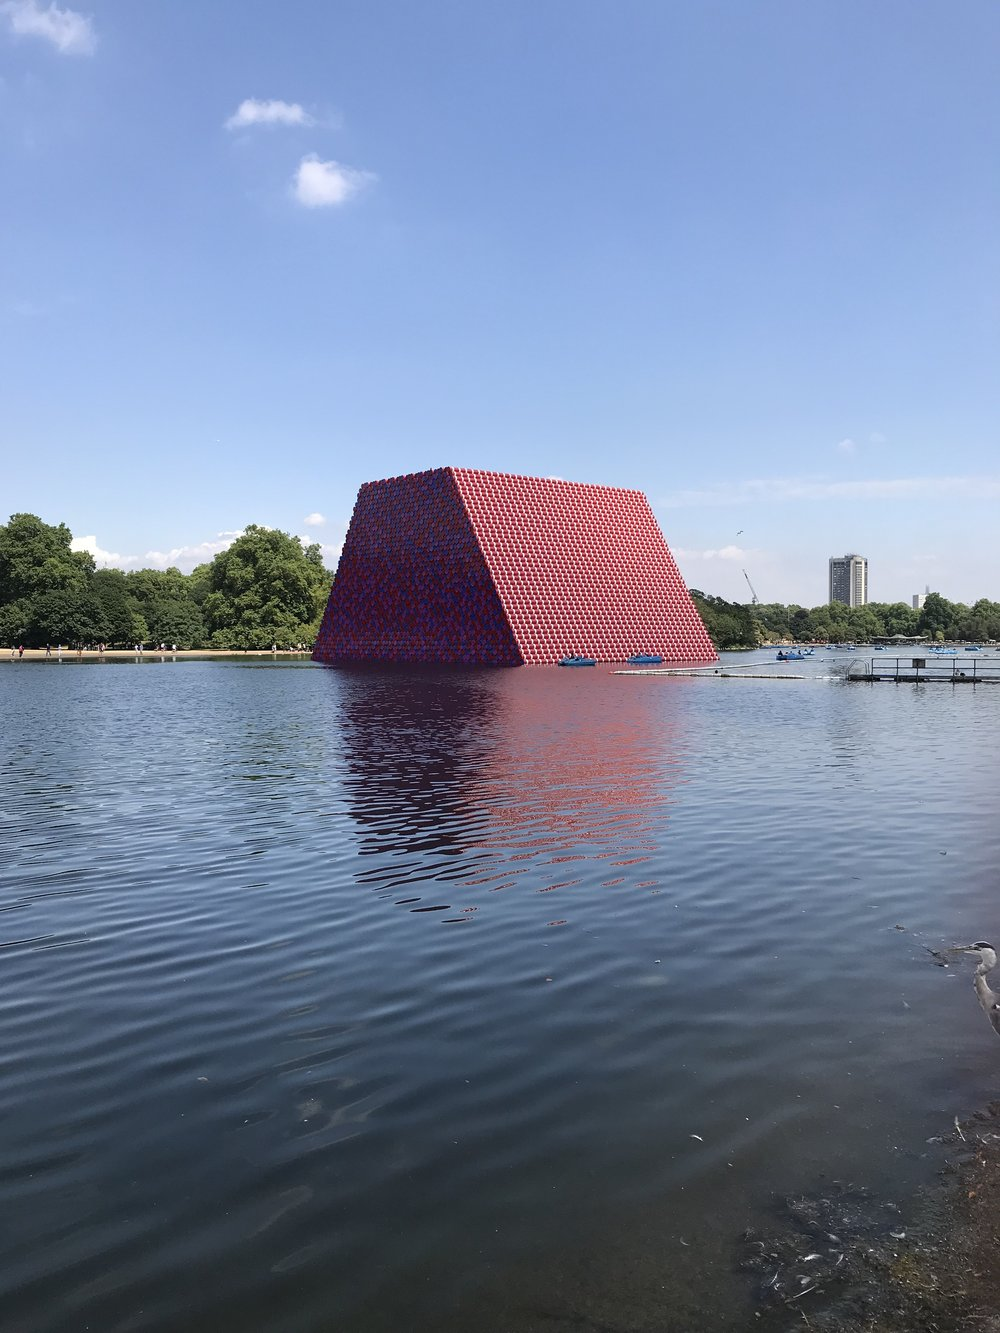 Serpentine Gallery - The London Mastaba By Christo and Jeanne-Claude